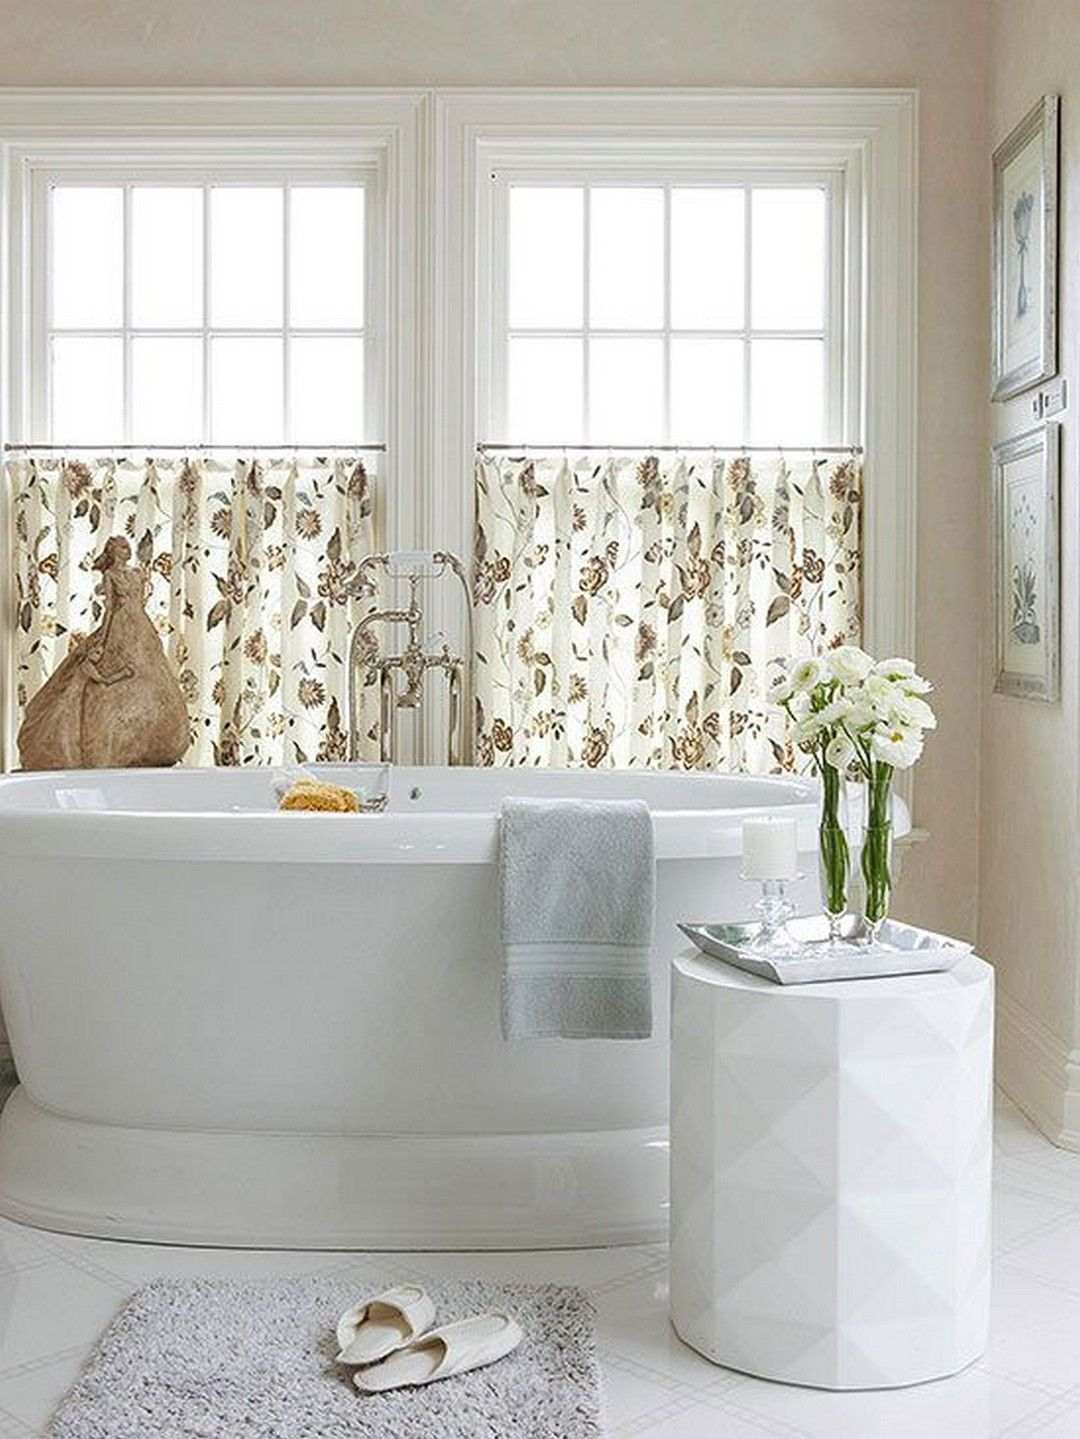 Bathroom Window Cover For Providing Privacy and Beautifying The ...